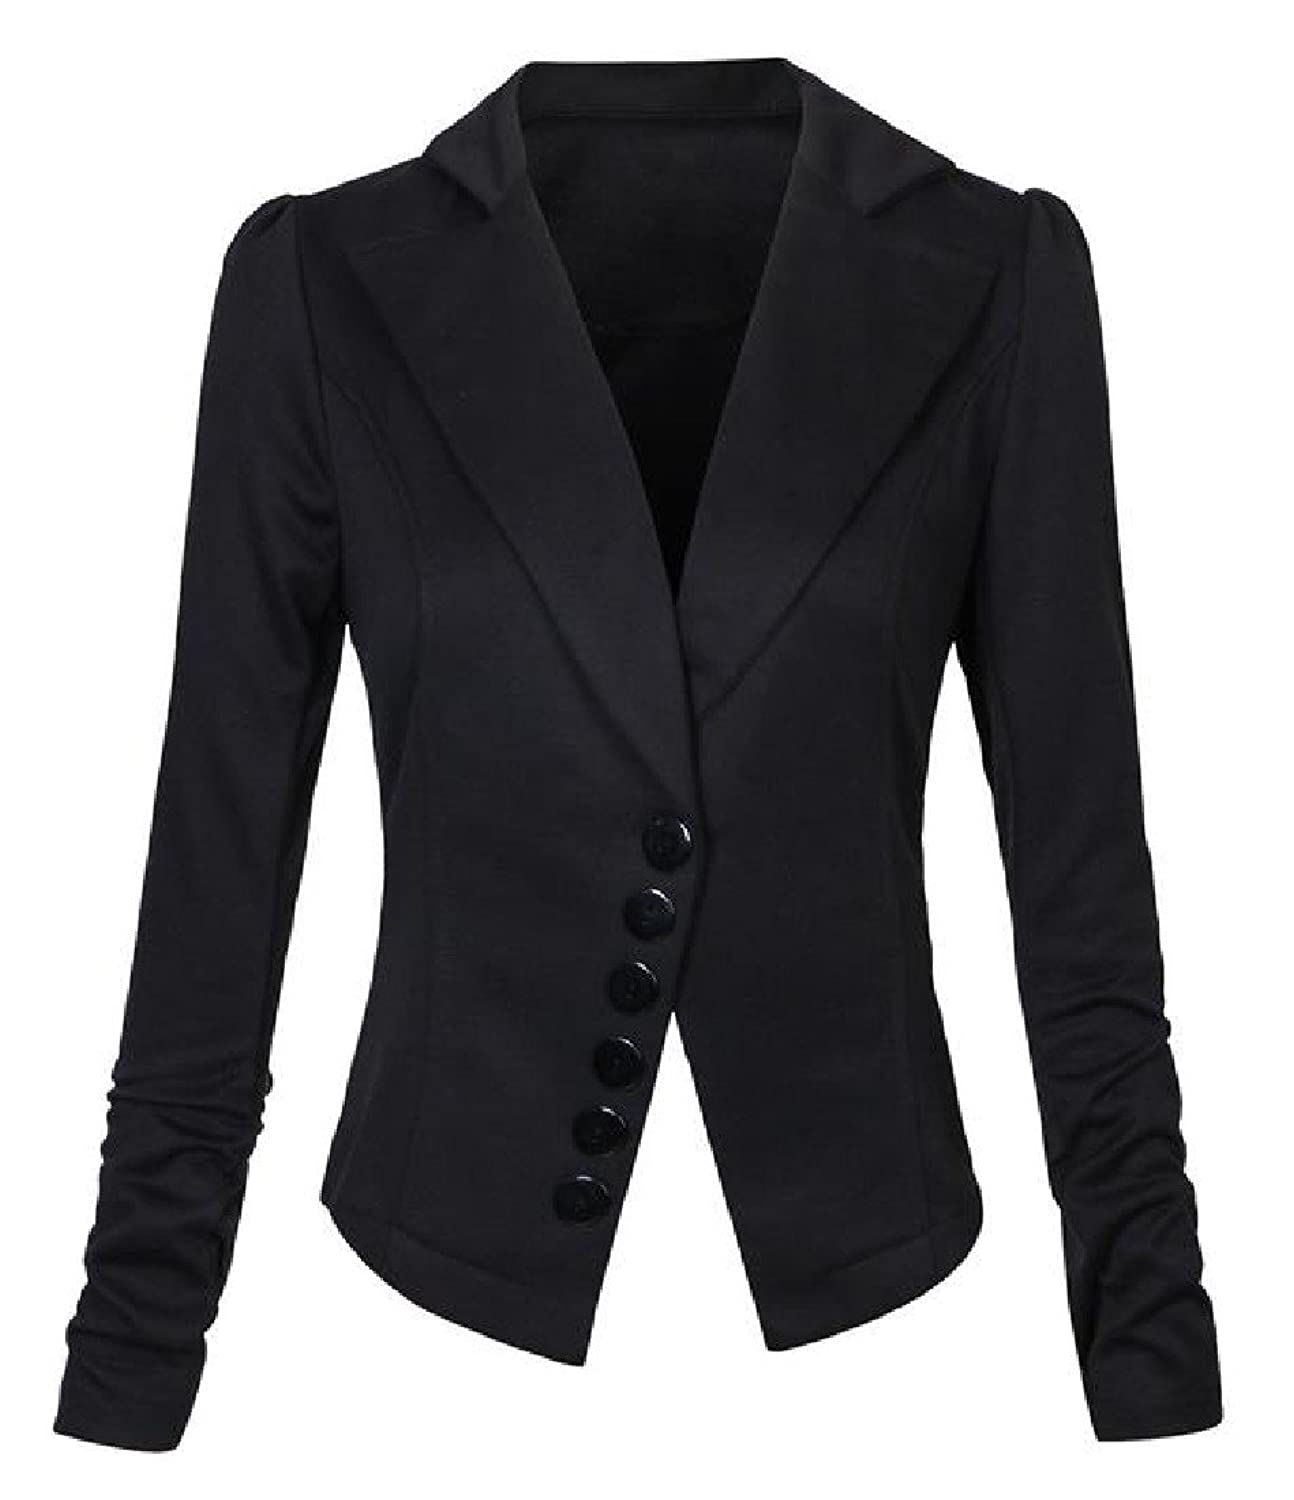 XiaoShop Women's Lapel Long Sleeve Slim Fitting Solid Buckle Suit Blouses free shipping